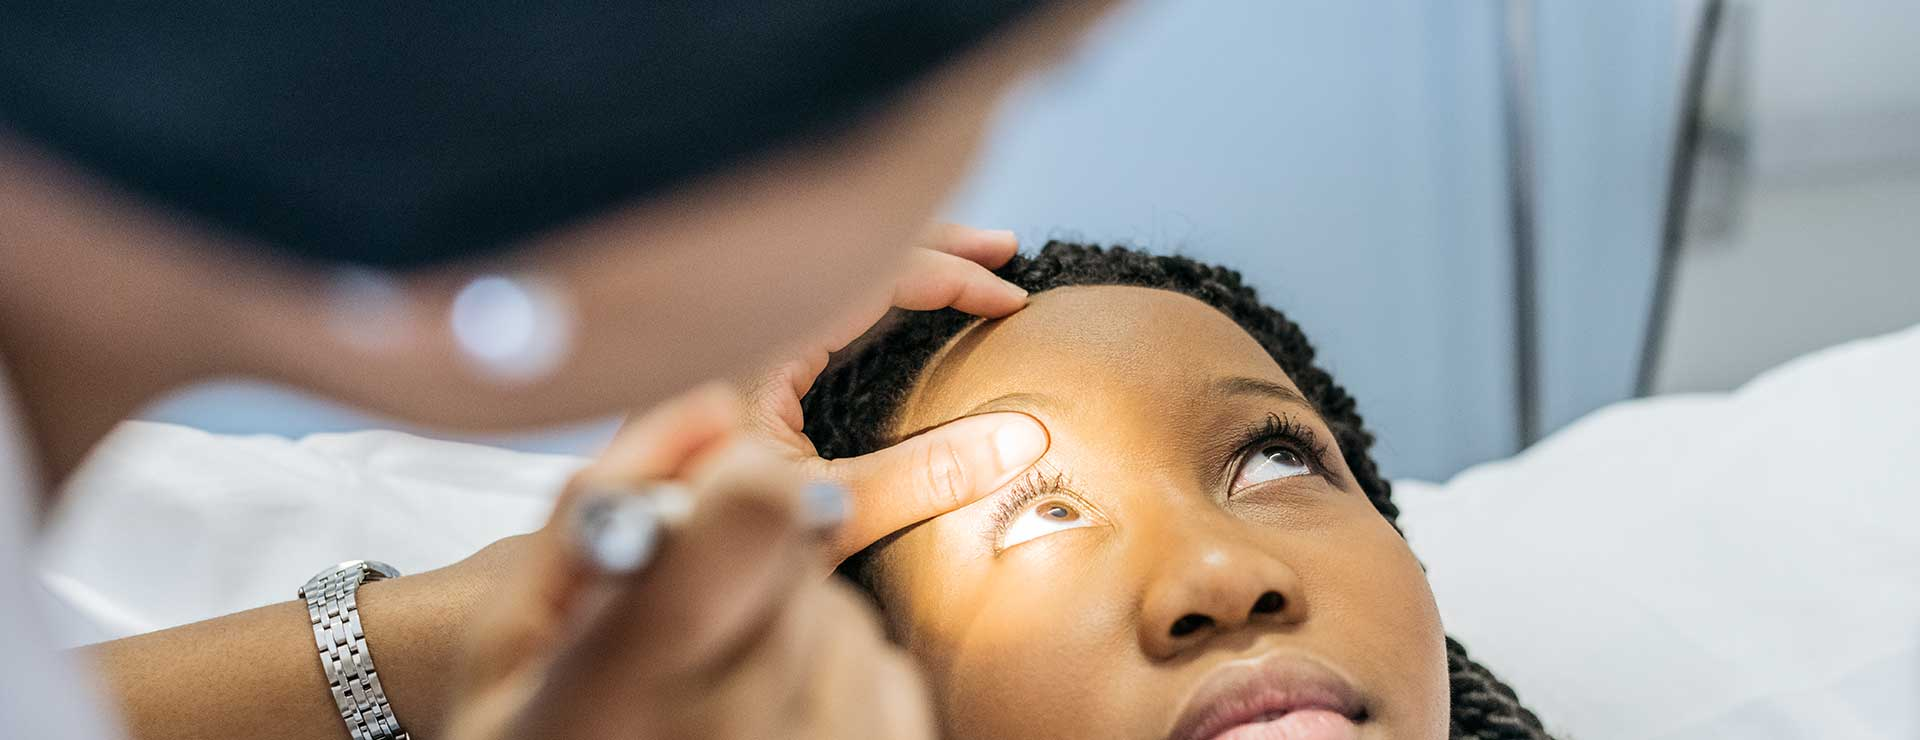 a doctor shines a light into eye of female patient